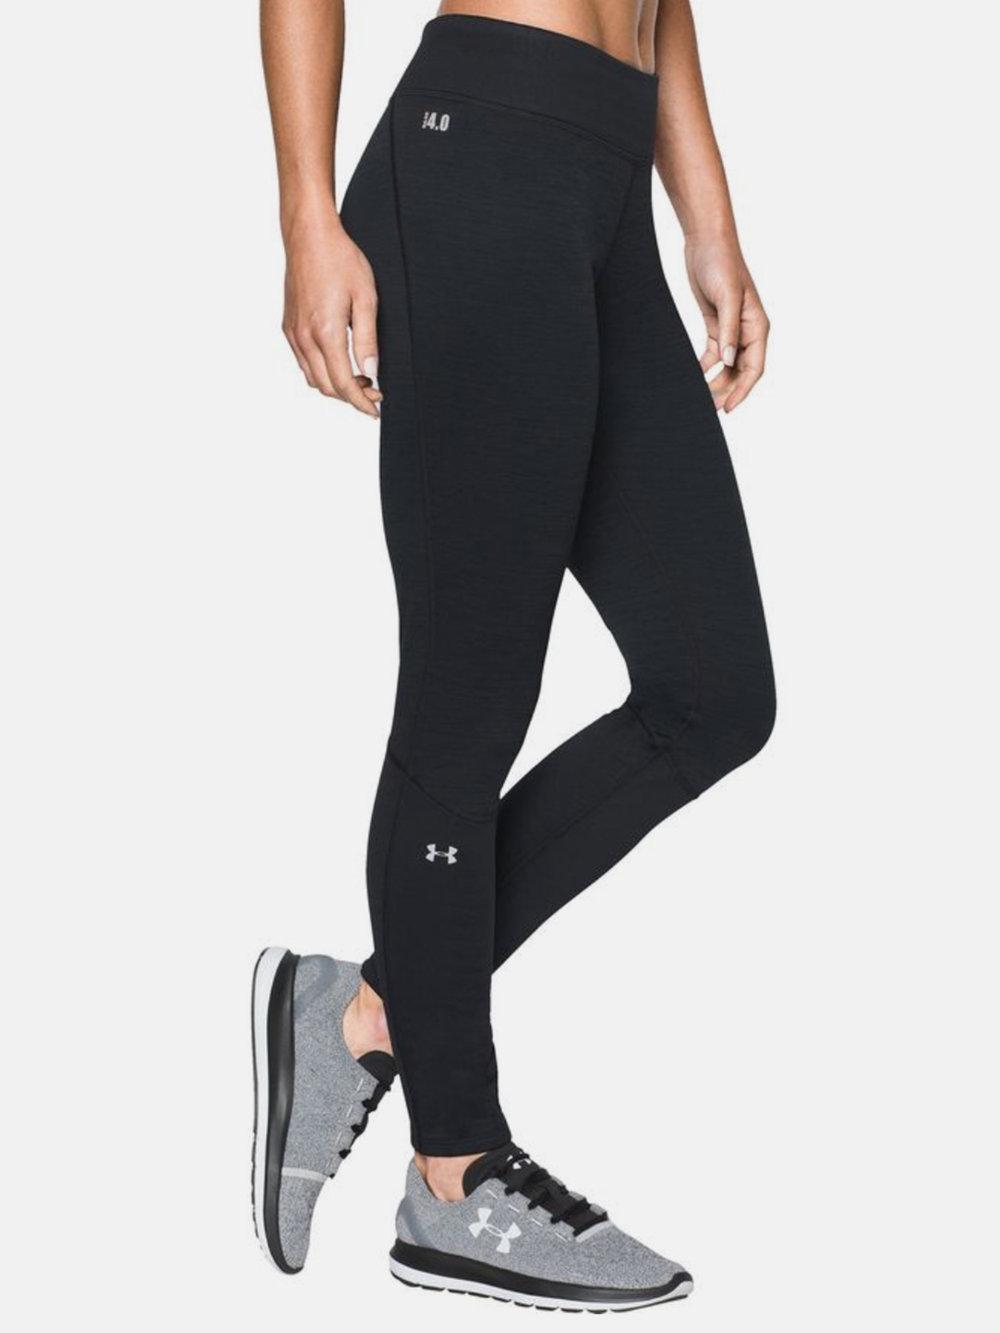 Under Armour Base Layer Women's - $84.99